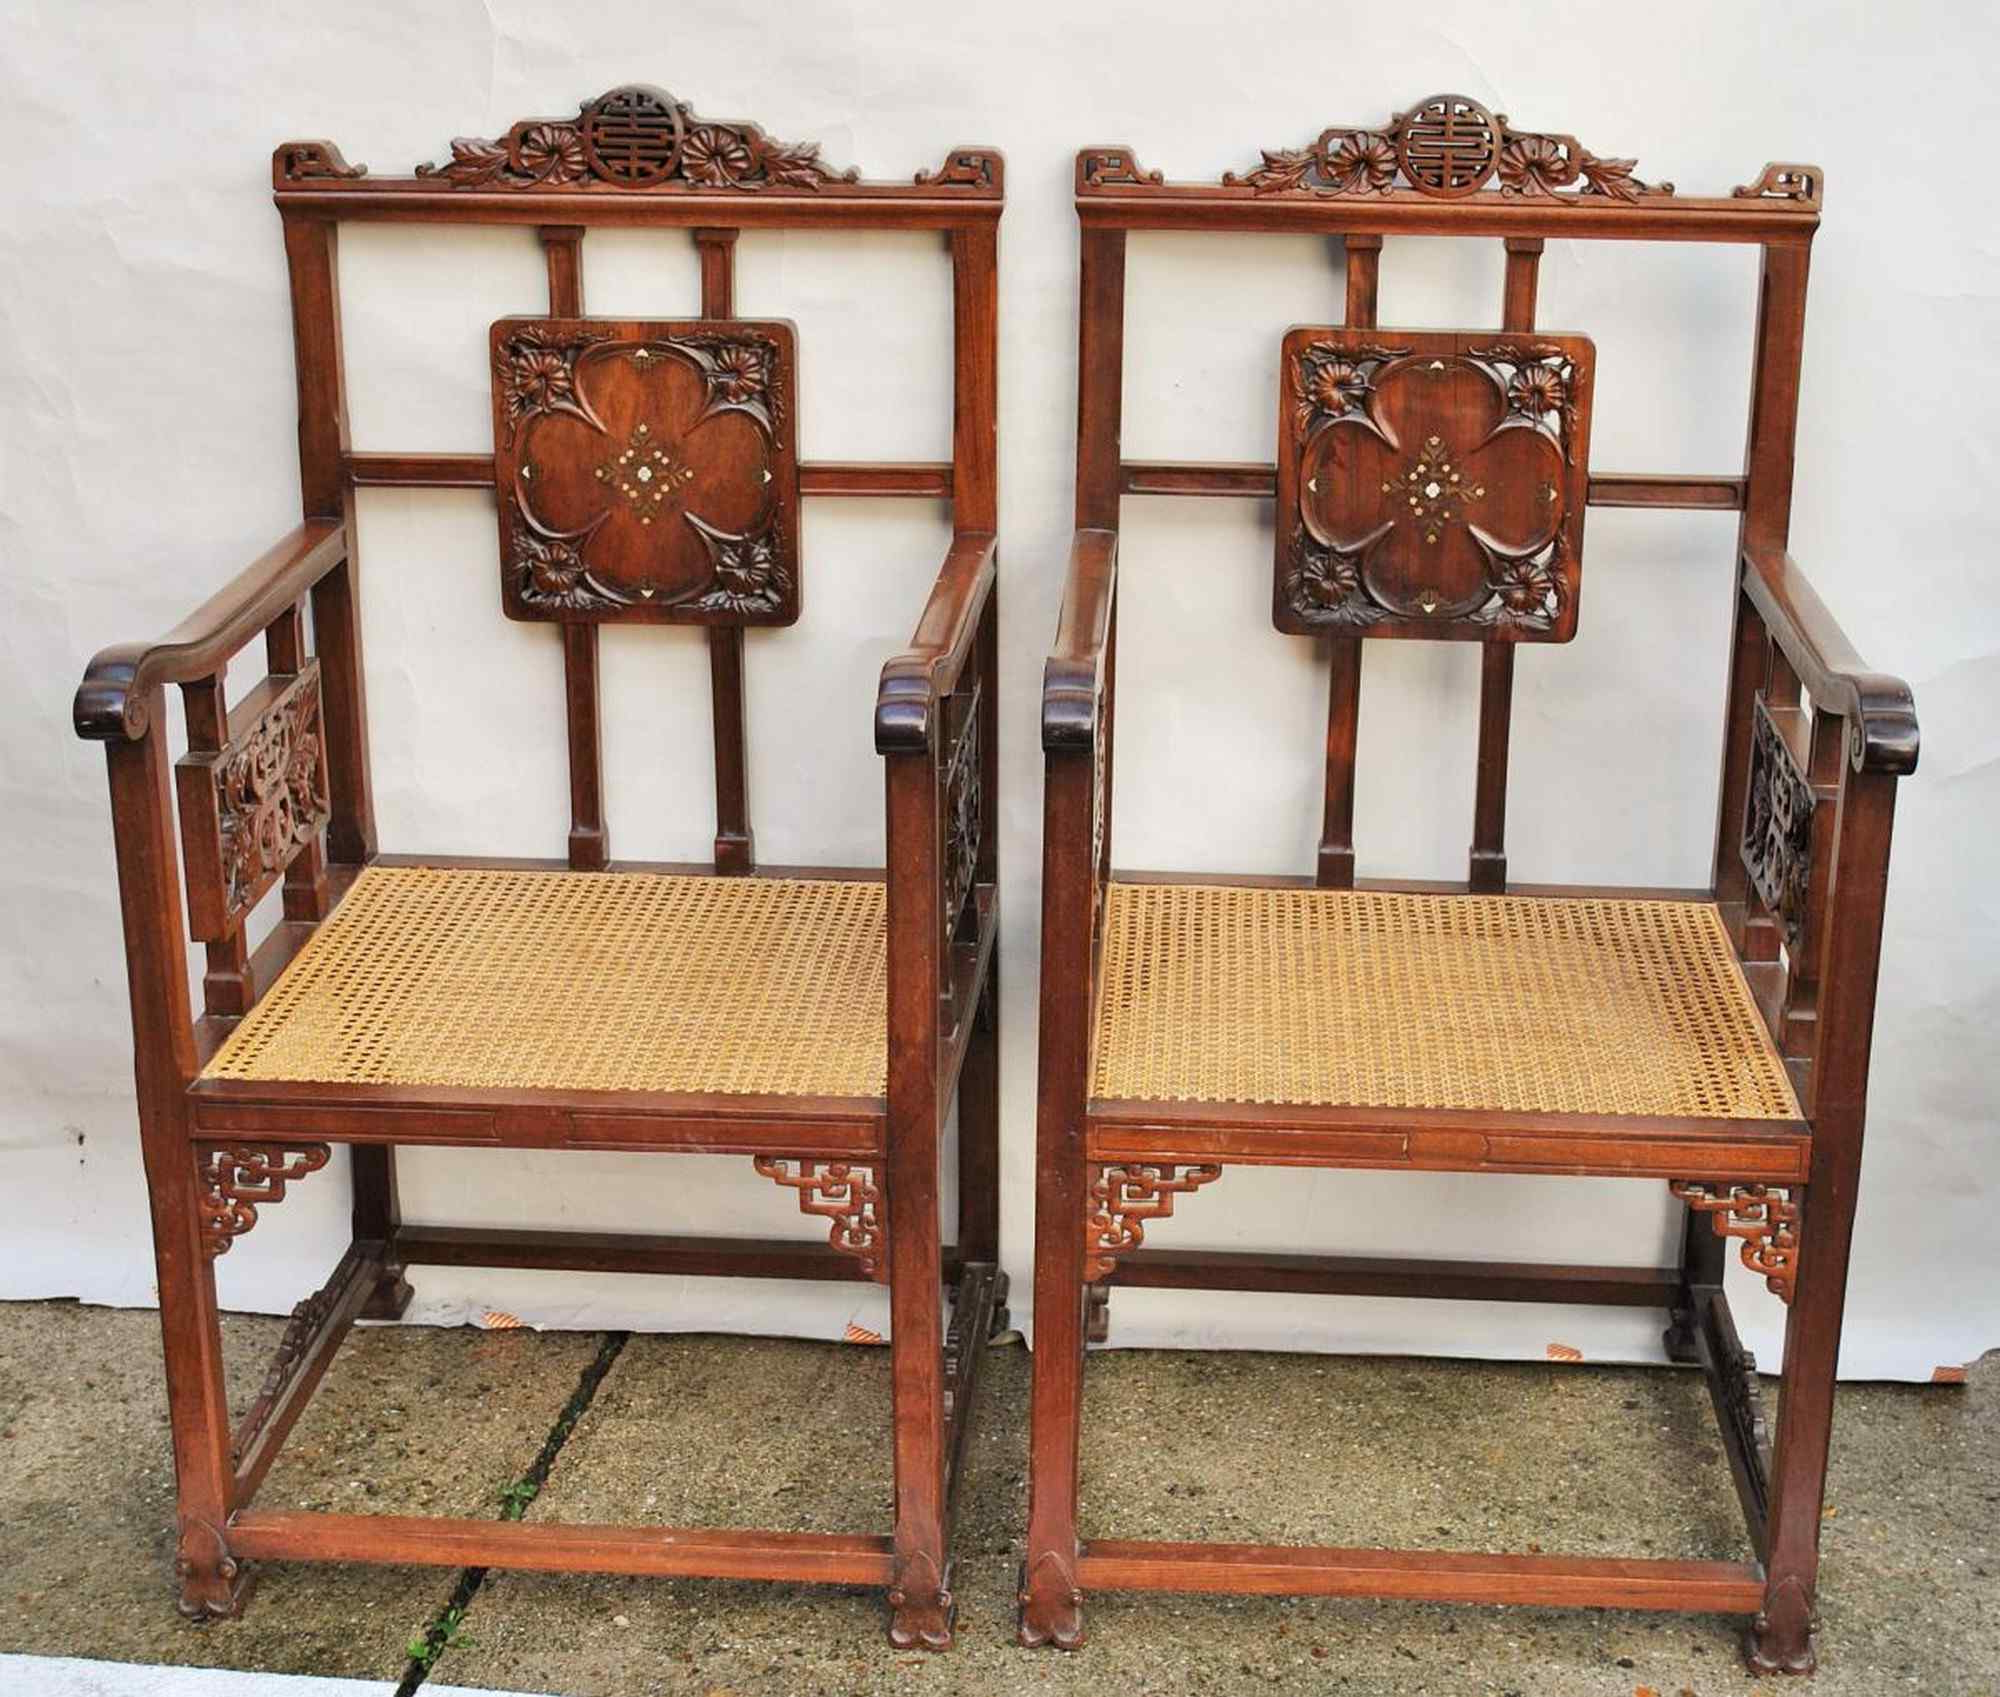 Focht Armchairs Pertaining To Latest Pair Of Armchairs With Mother Of Pearl Inlay, Late 19th Cent (View 19 of 20)